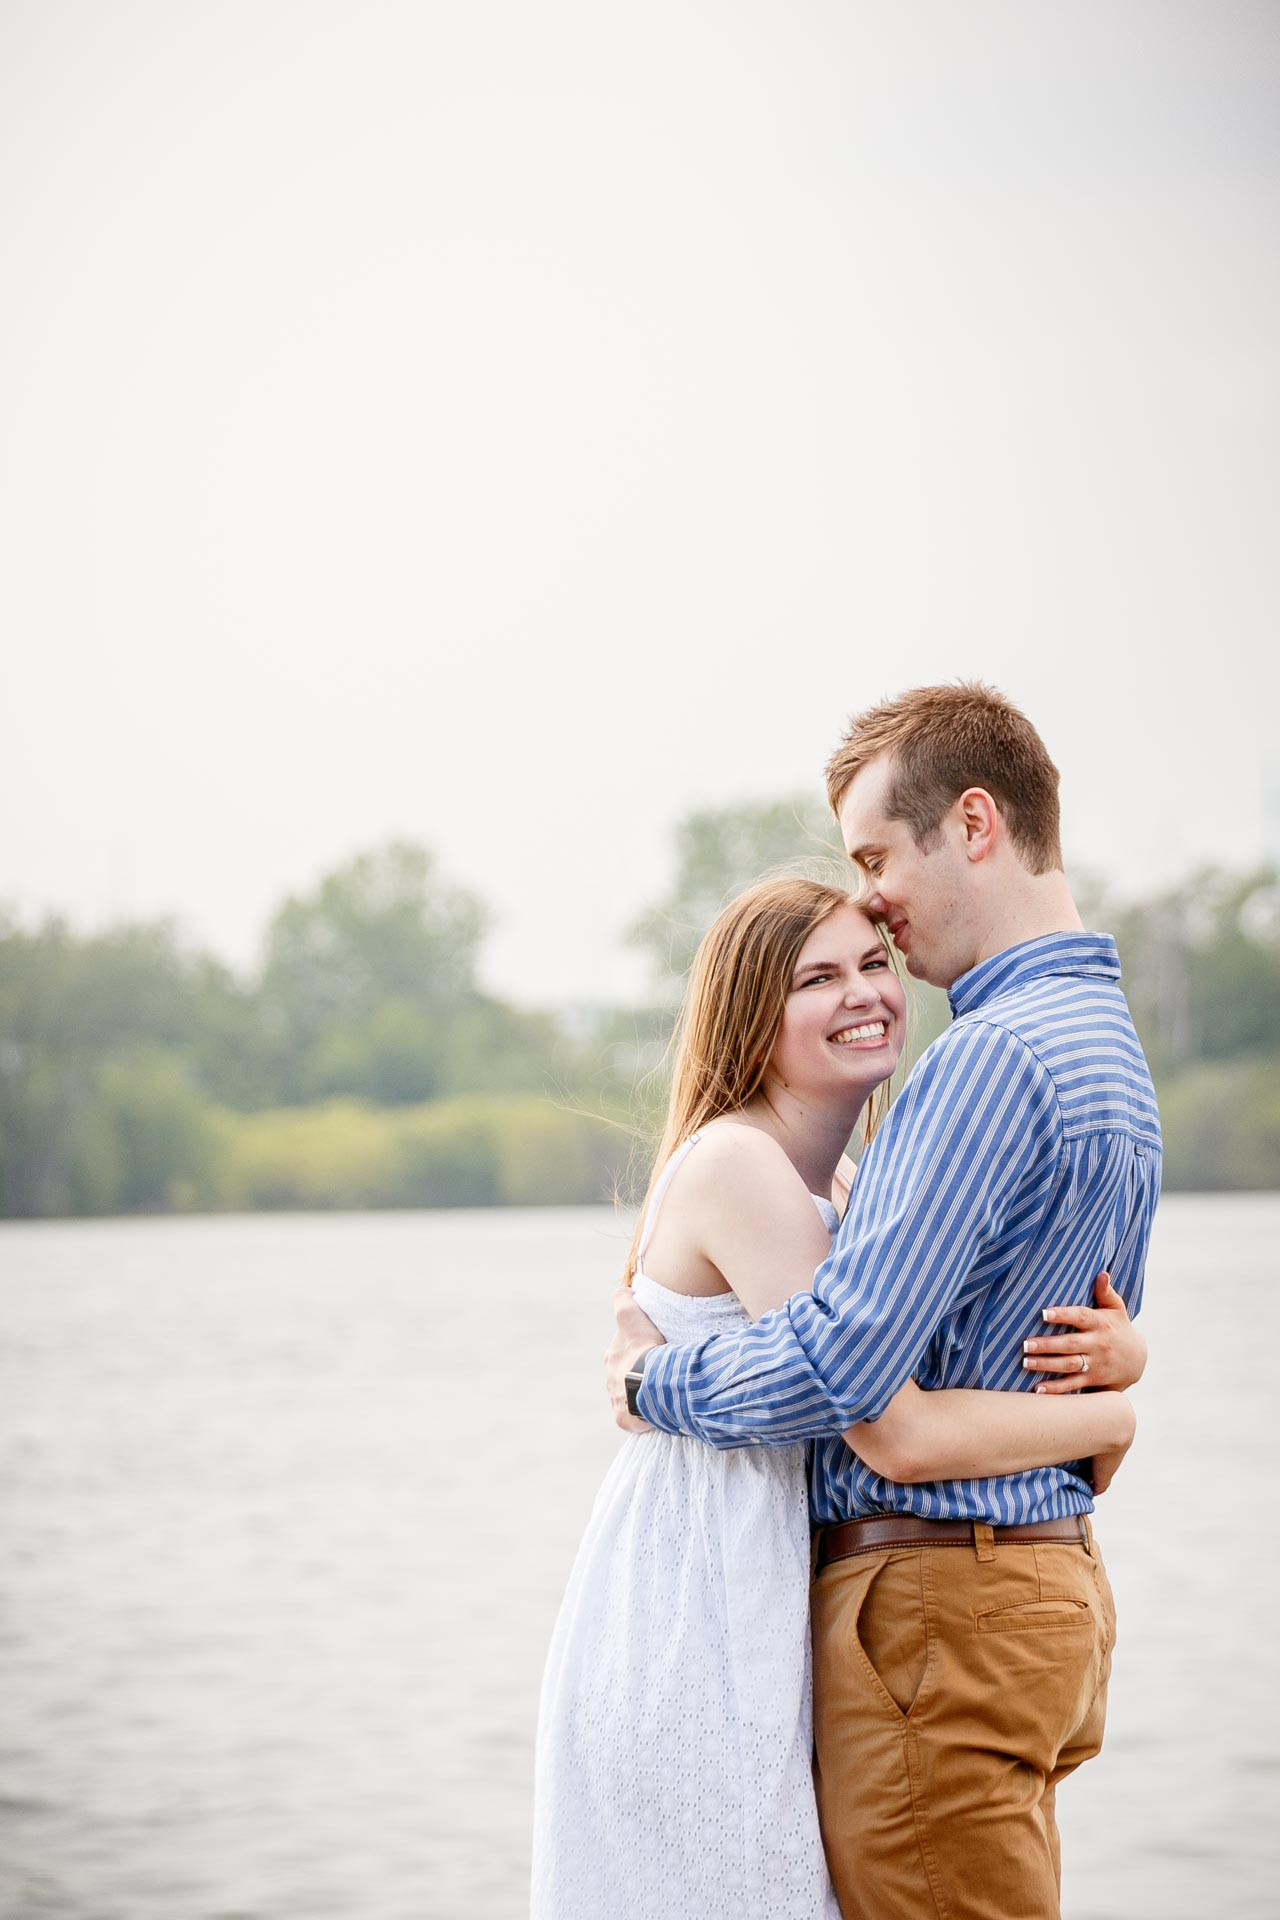 engagement-photos-voyageur-park-de-pere-wisconsin-wi-adam-shea-photography-adam-shea-photography-green-bay-appleton-neenah-photographer-09.jpg